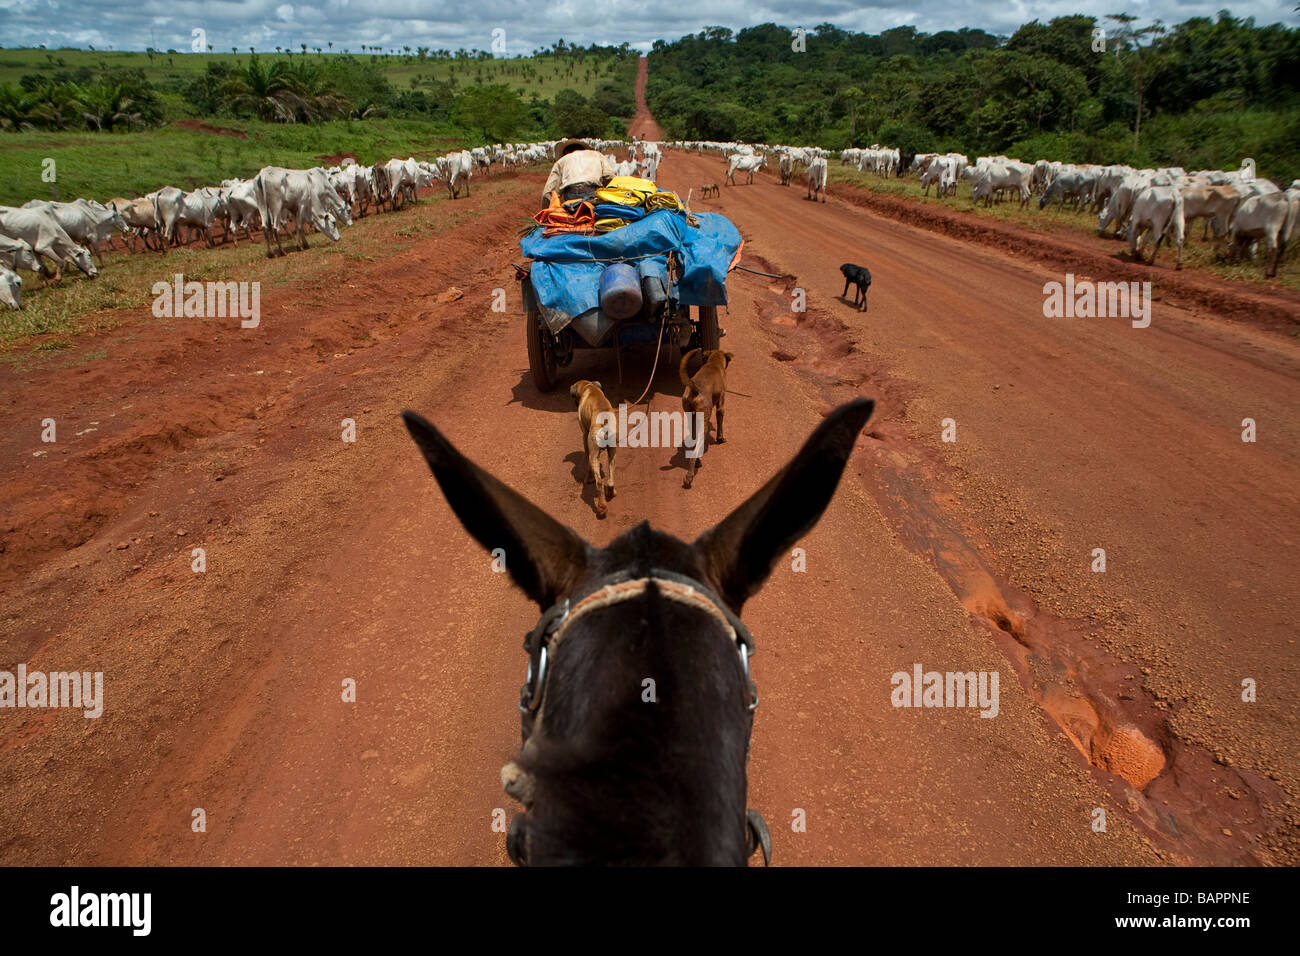 Herd of cattle BR 163 road at South Para State Amazon Brazil Stock Photo